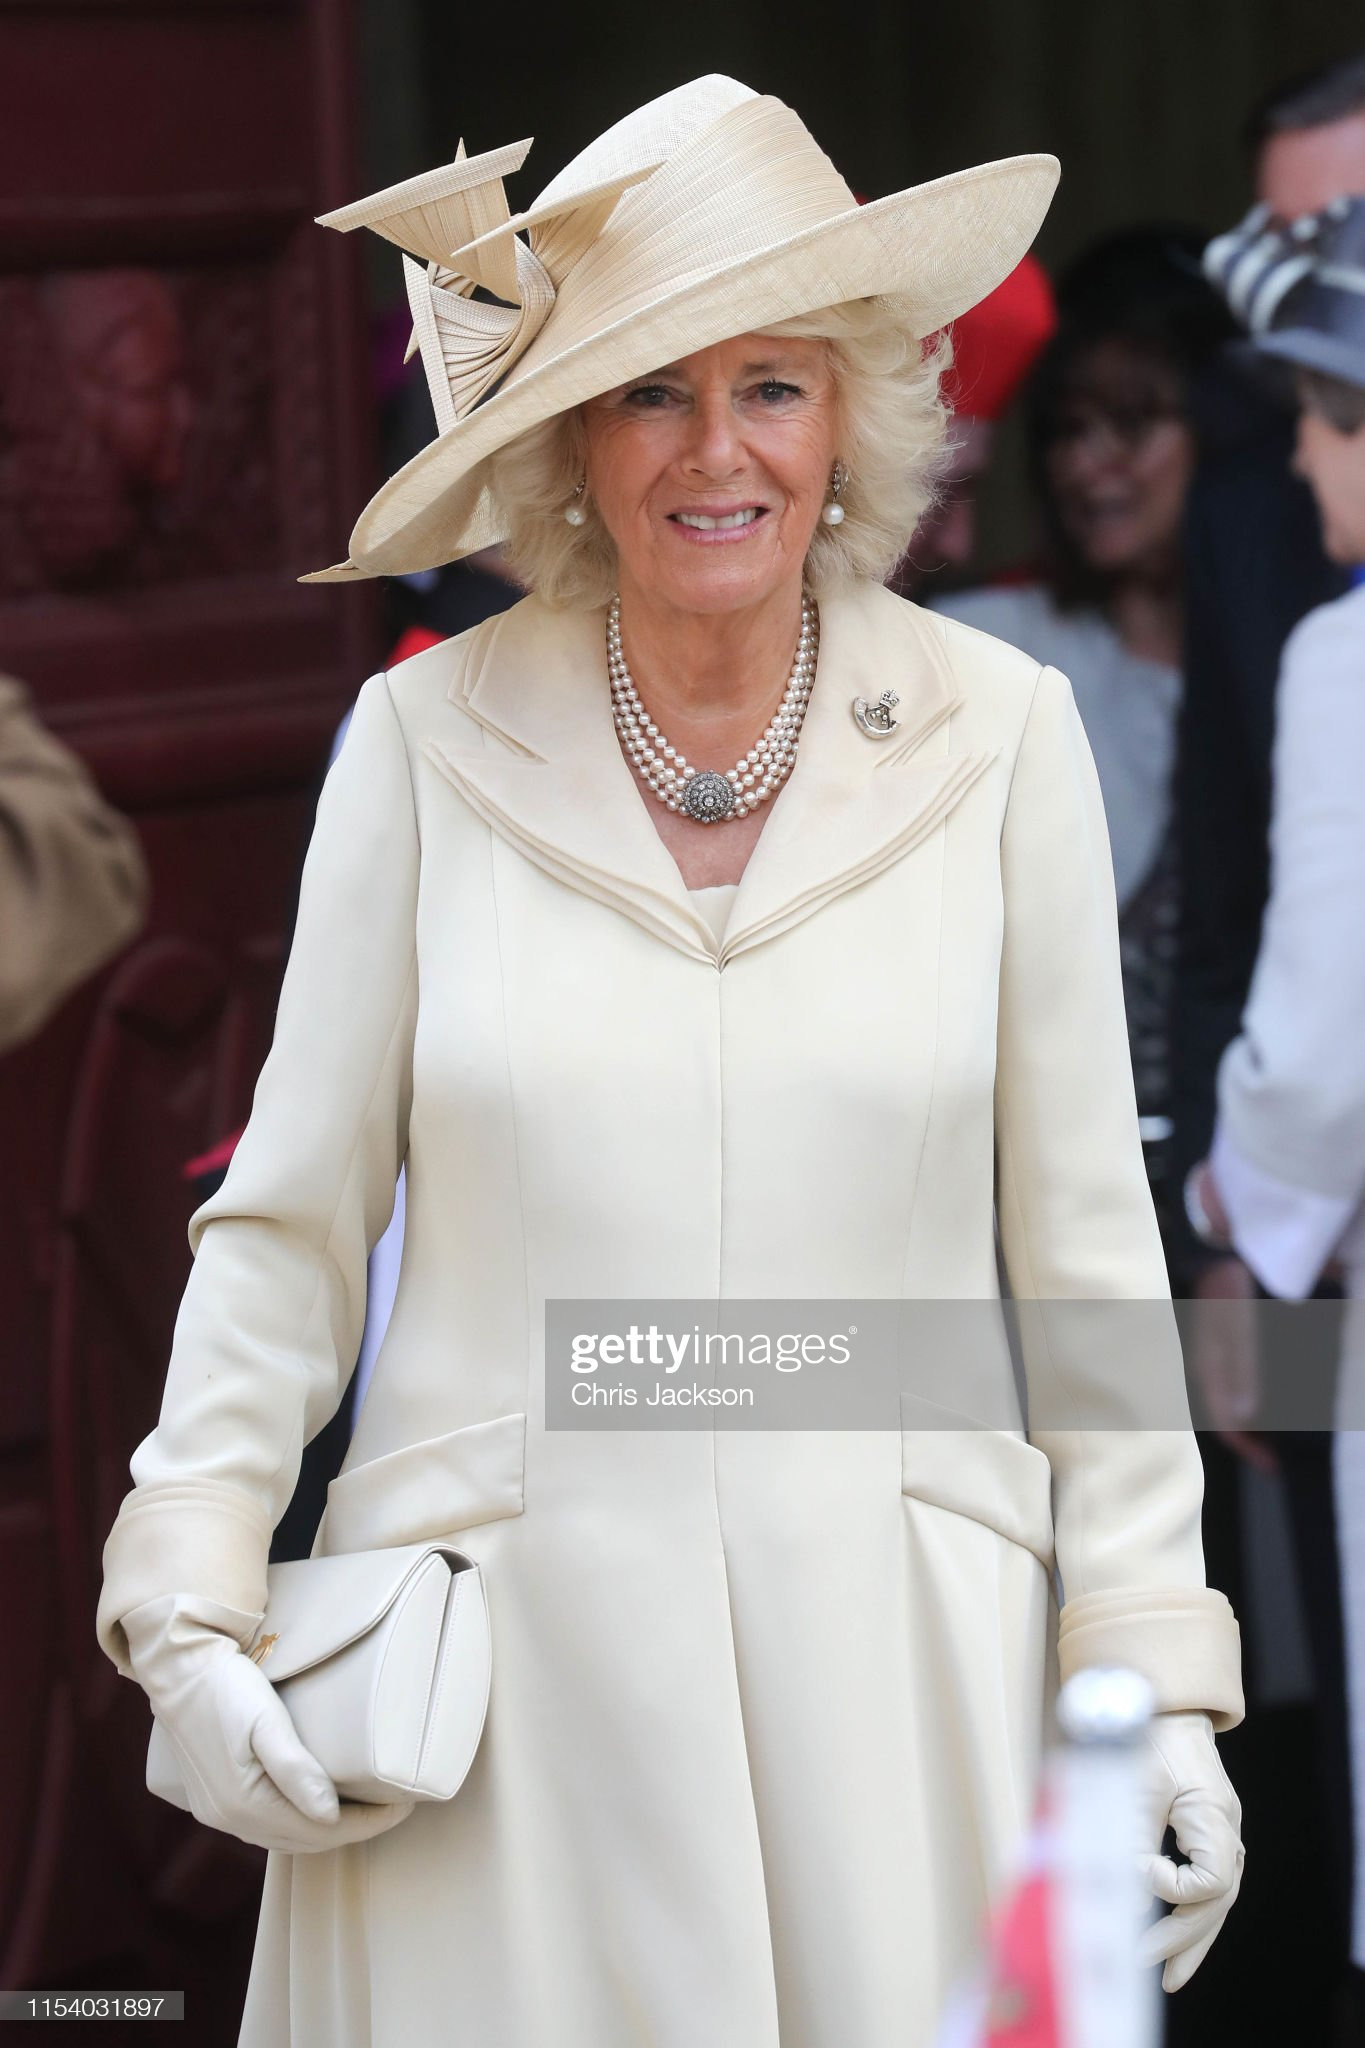 camilla-duchess-of-cornwall-departs-bayeux-cathedral-on-june-06-2019-picture-id1154031897